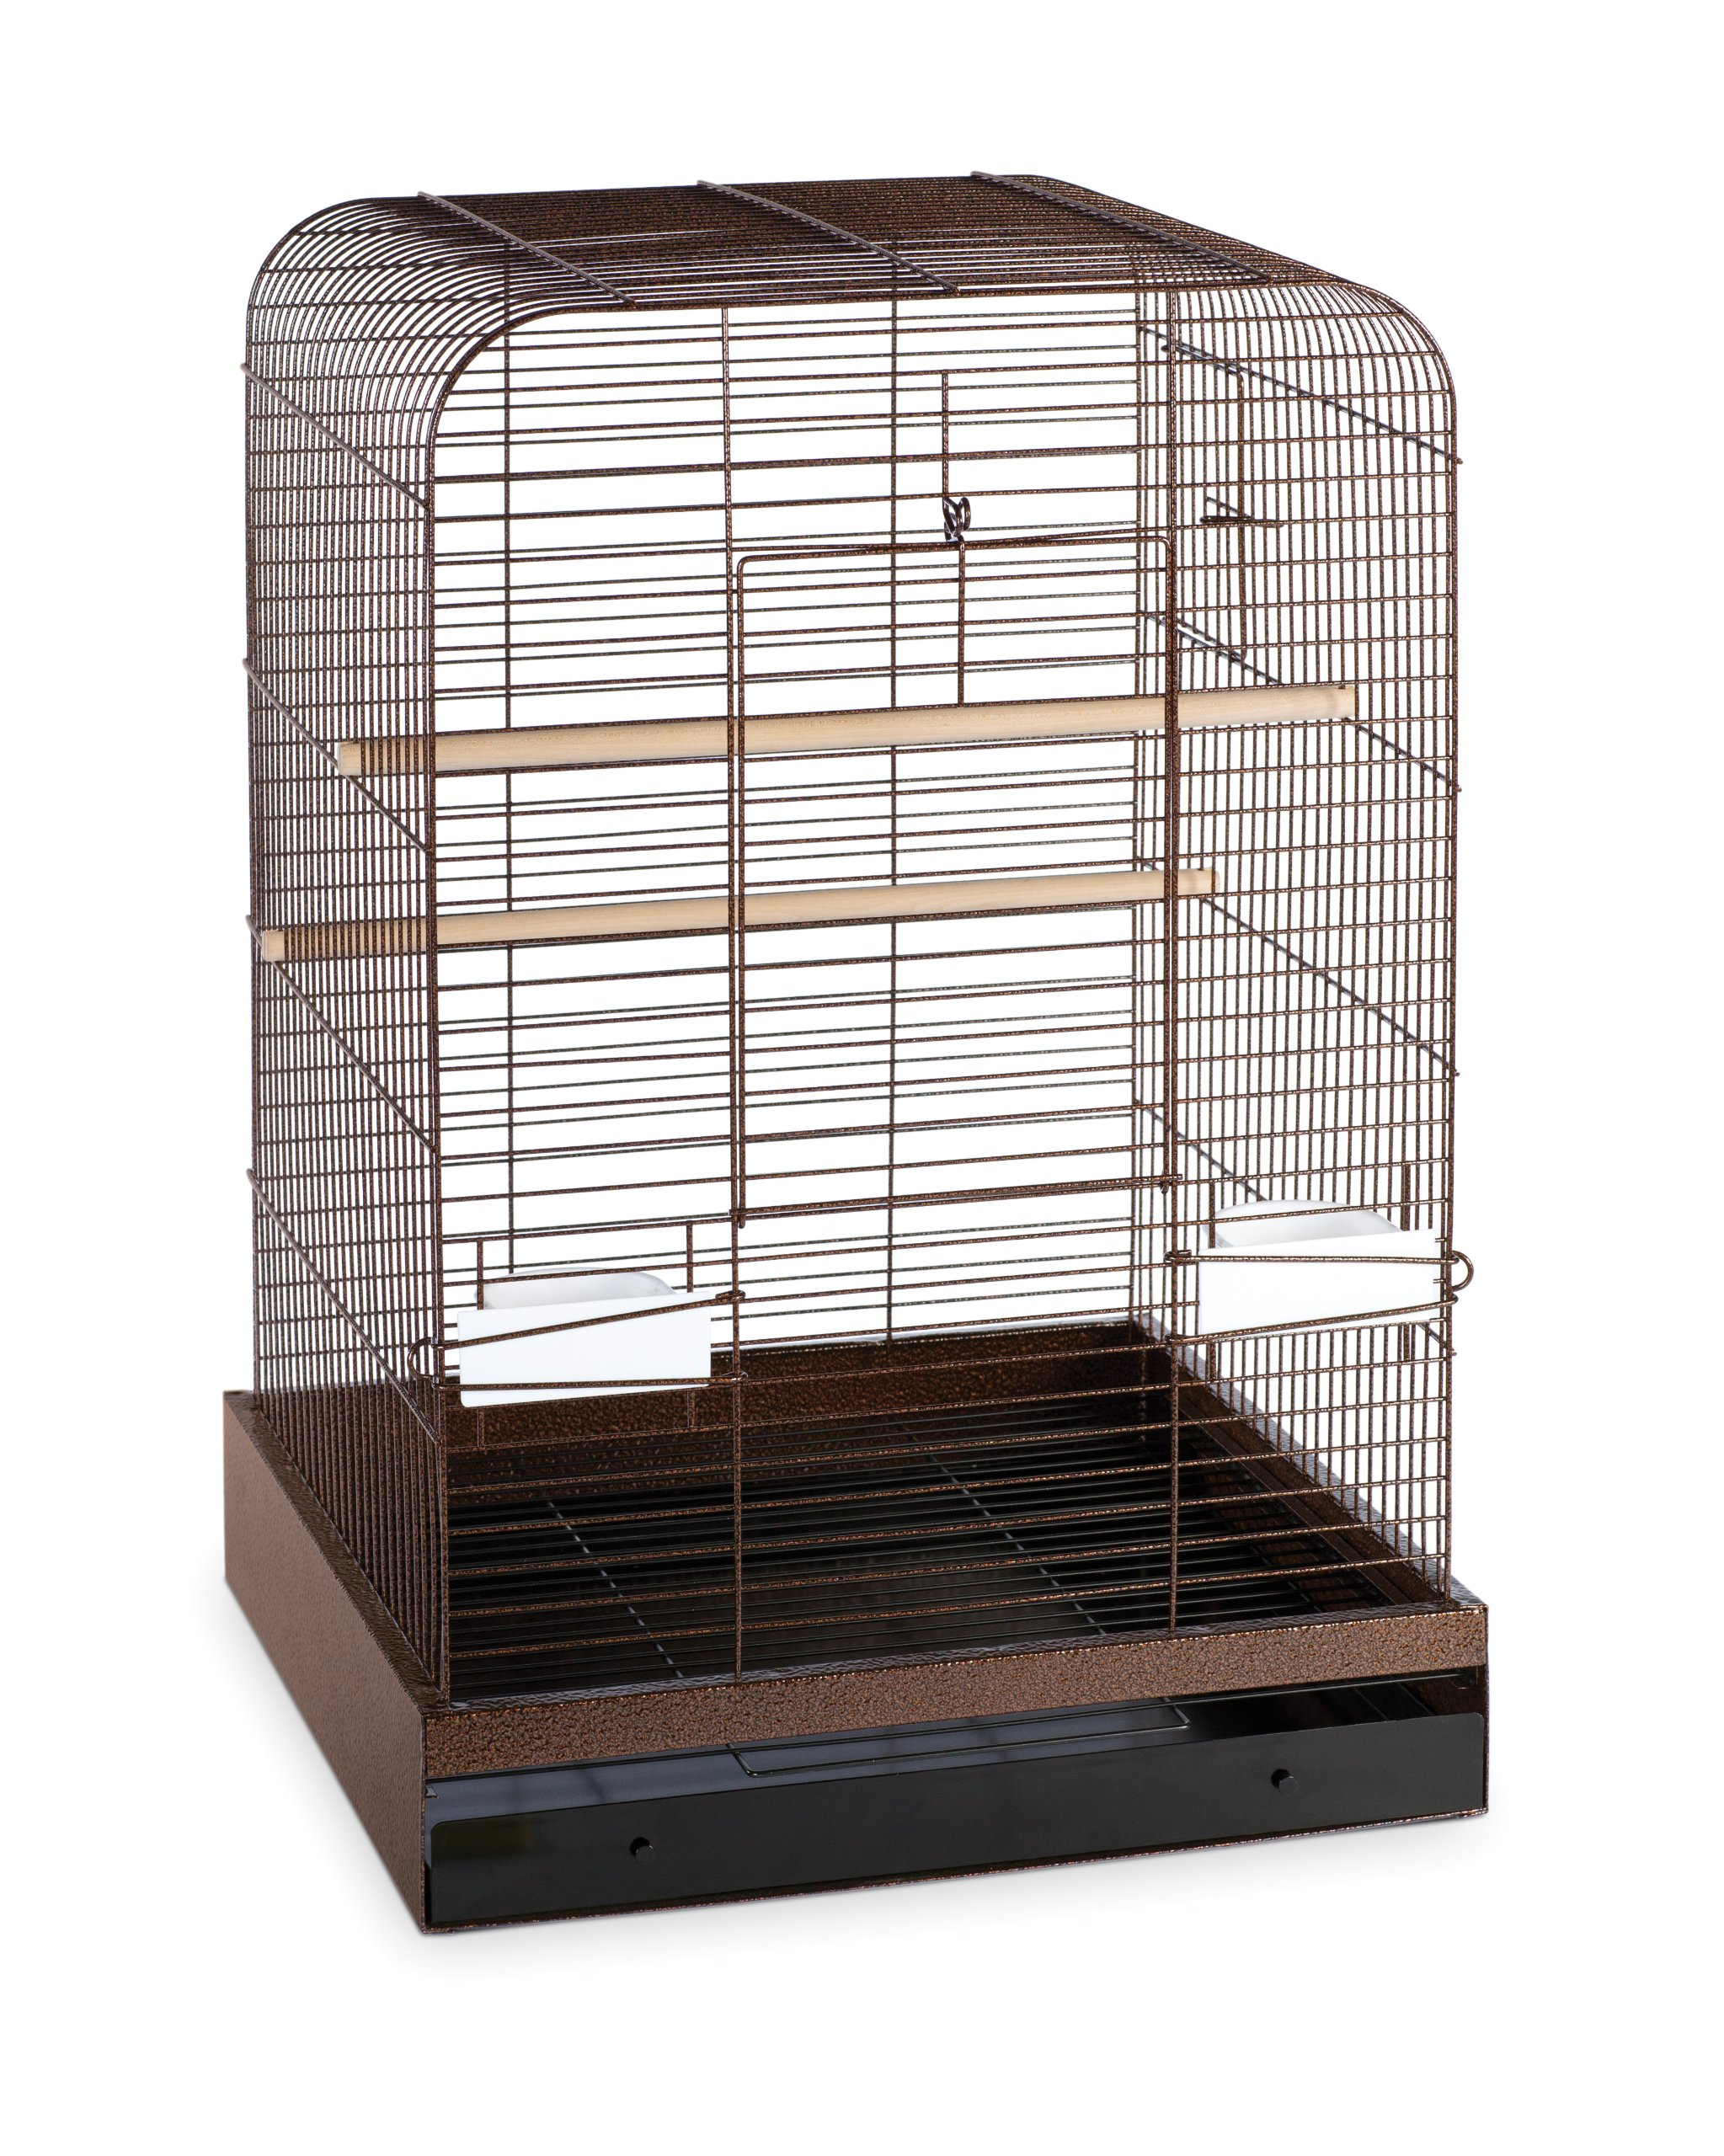 Prevue Hendryx 124COP Pet Products Madison Bird Cage, Copper by Prevue Hendryx